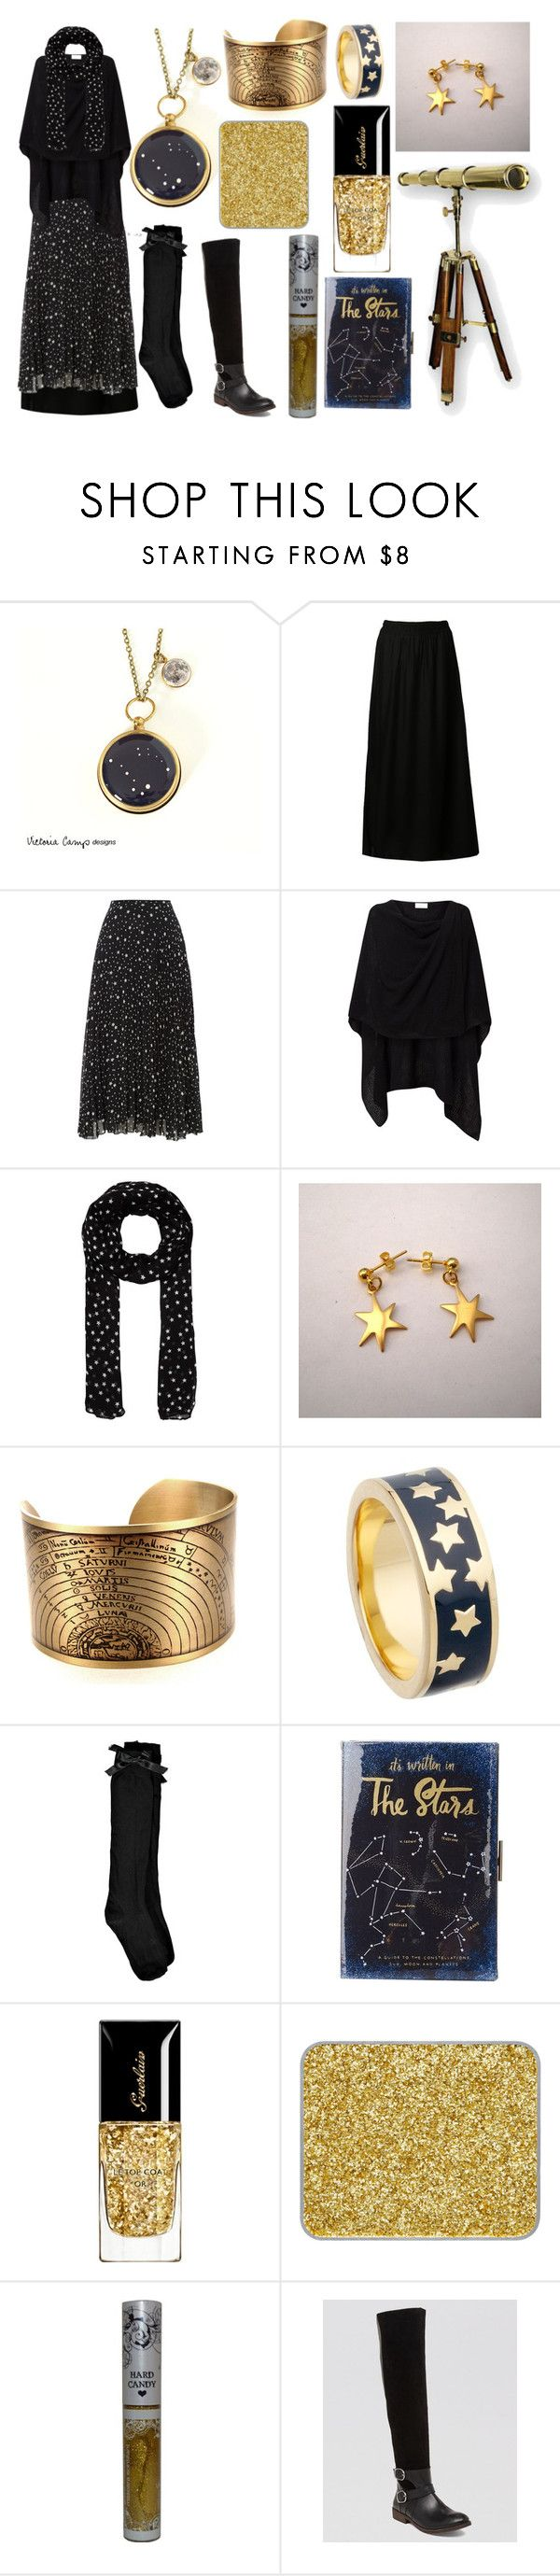 The Atronomer by maggiehemlock on Polyvore featuring Biba, Boohoo, Jacqueline De Yong, Lucky Brand, Kate Spade, Astley Clarke, Hallhuber, shu uemura, Hard Candy and Guerlain